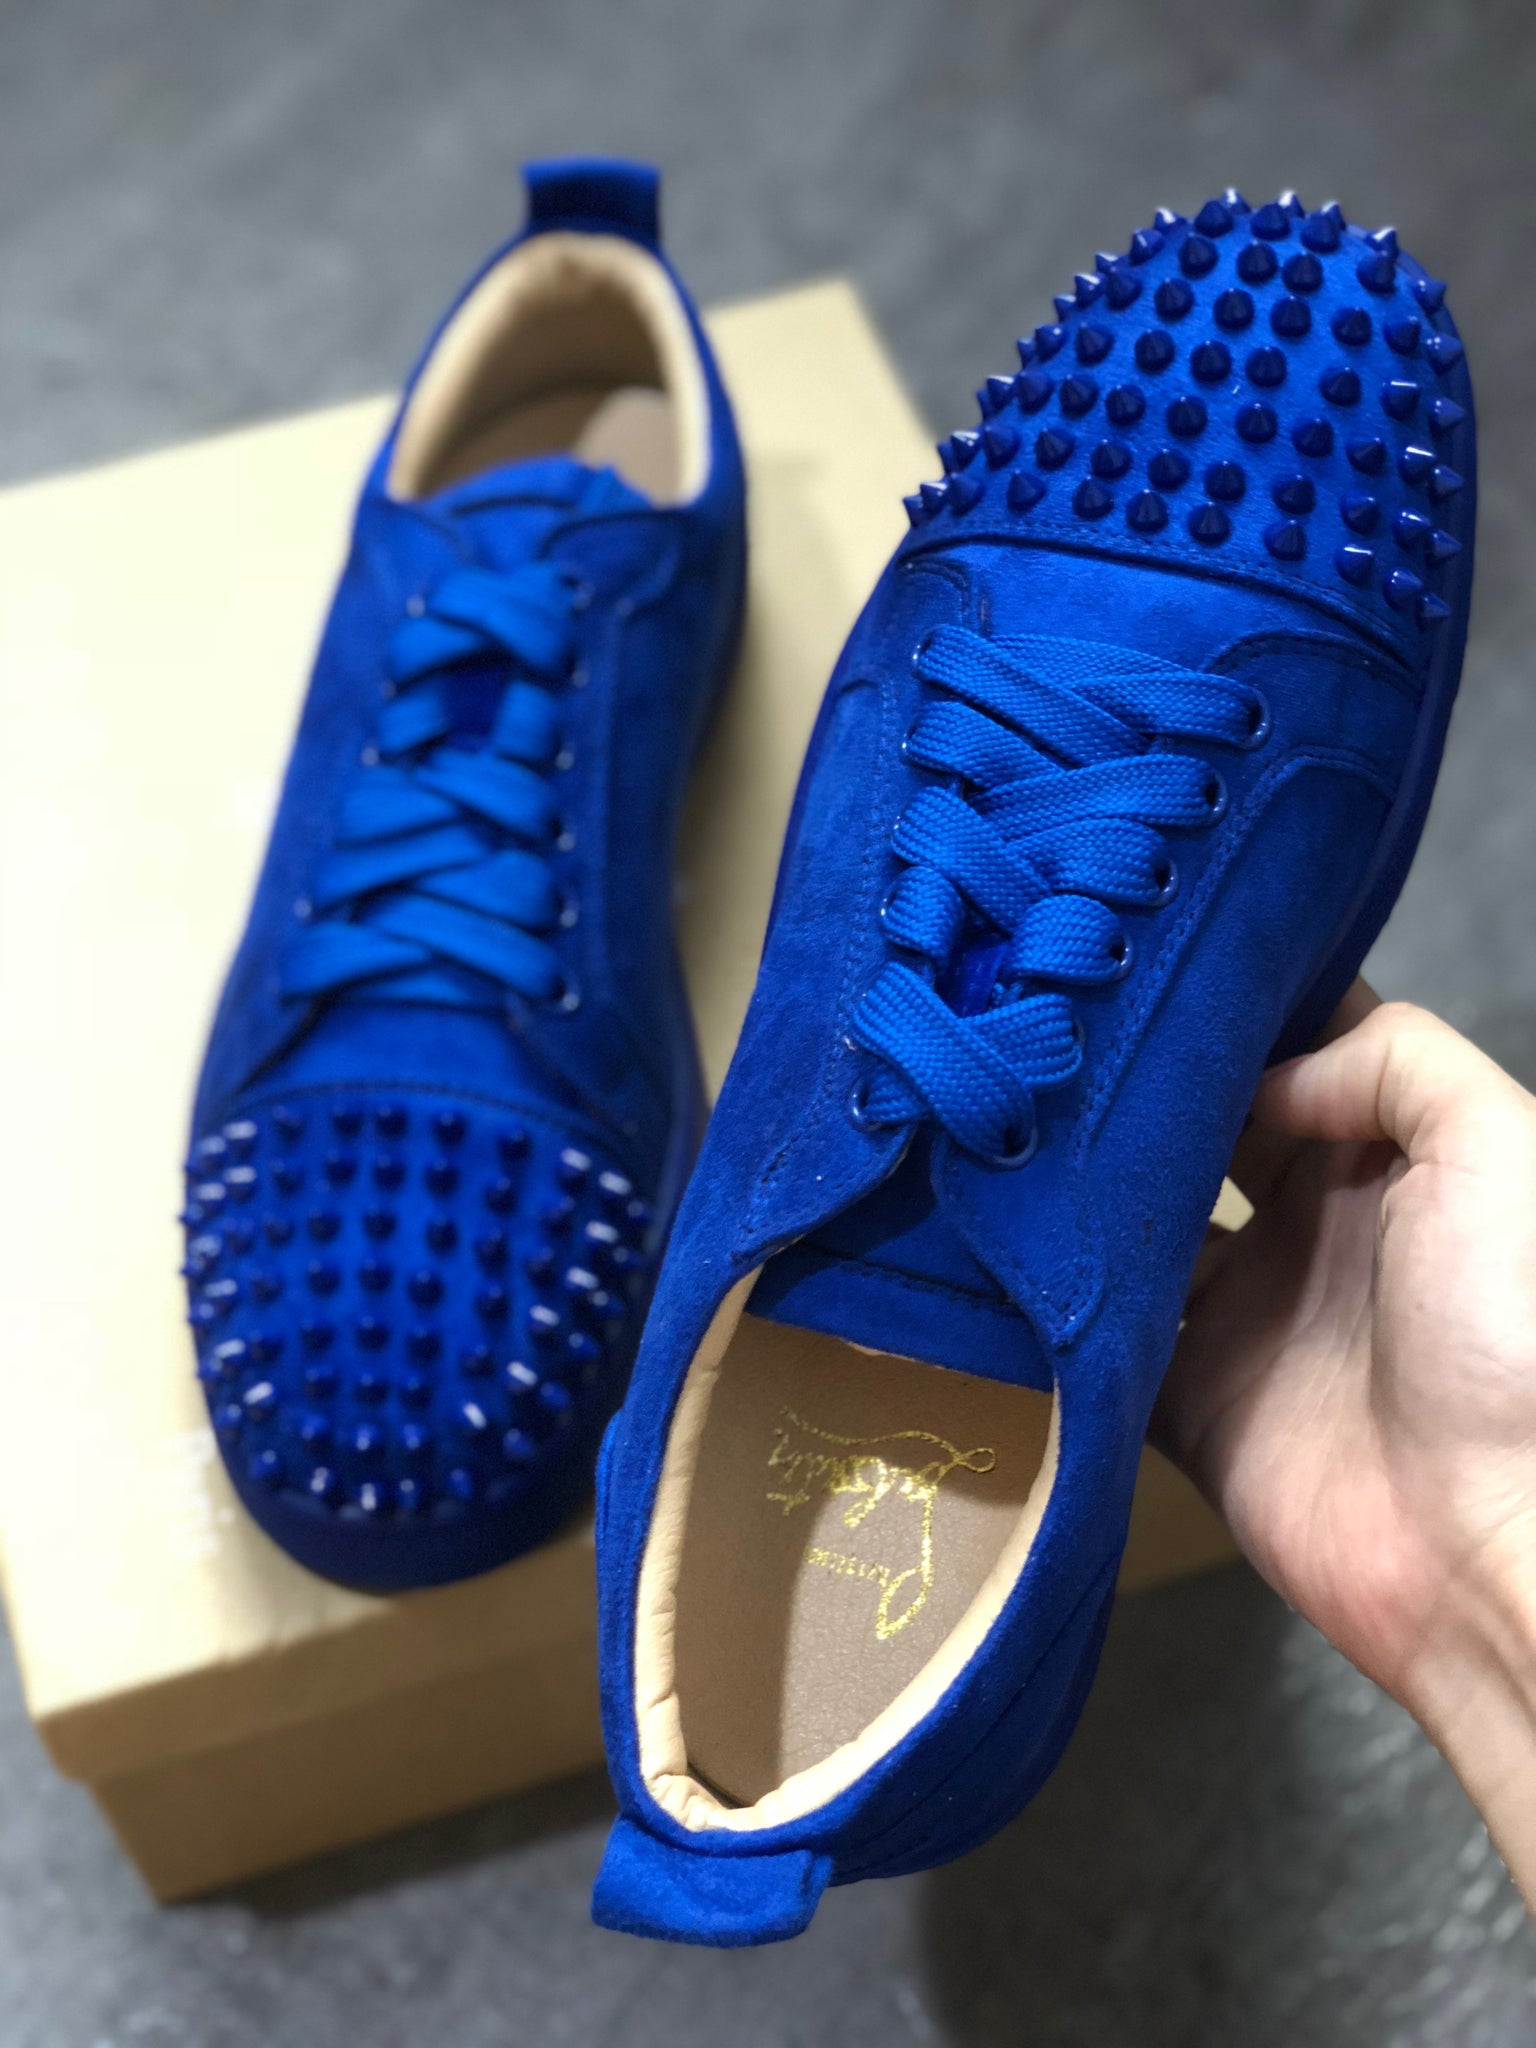 5af7efb3abf9 Blue Suede Low Top Louboutin Sneakers – Antigua fashion